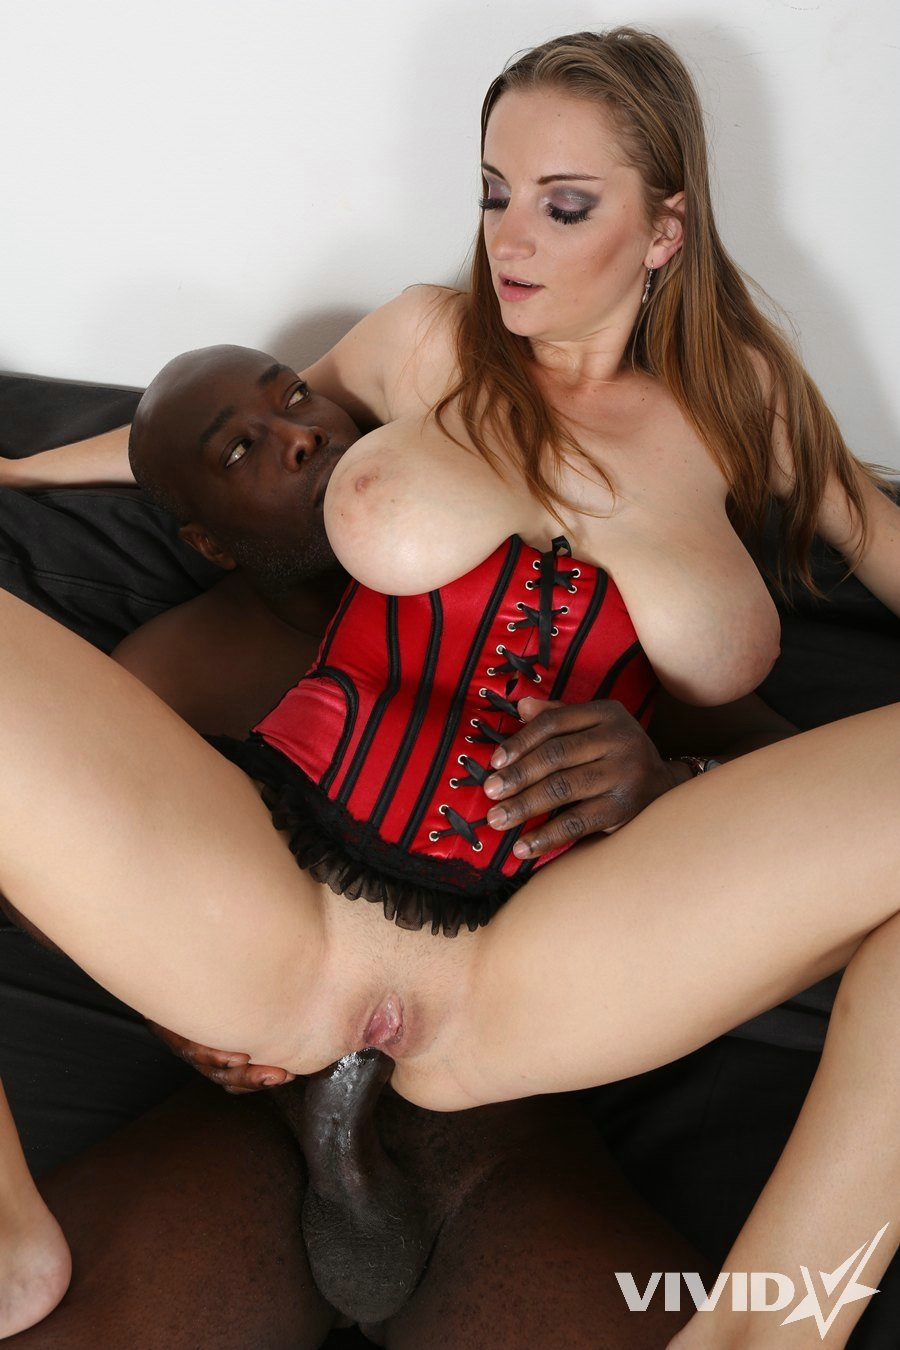 Mistress making money from sissy sucking cock